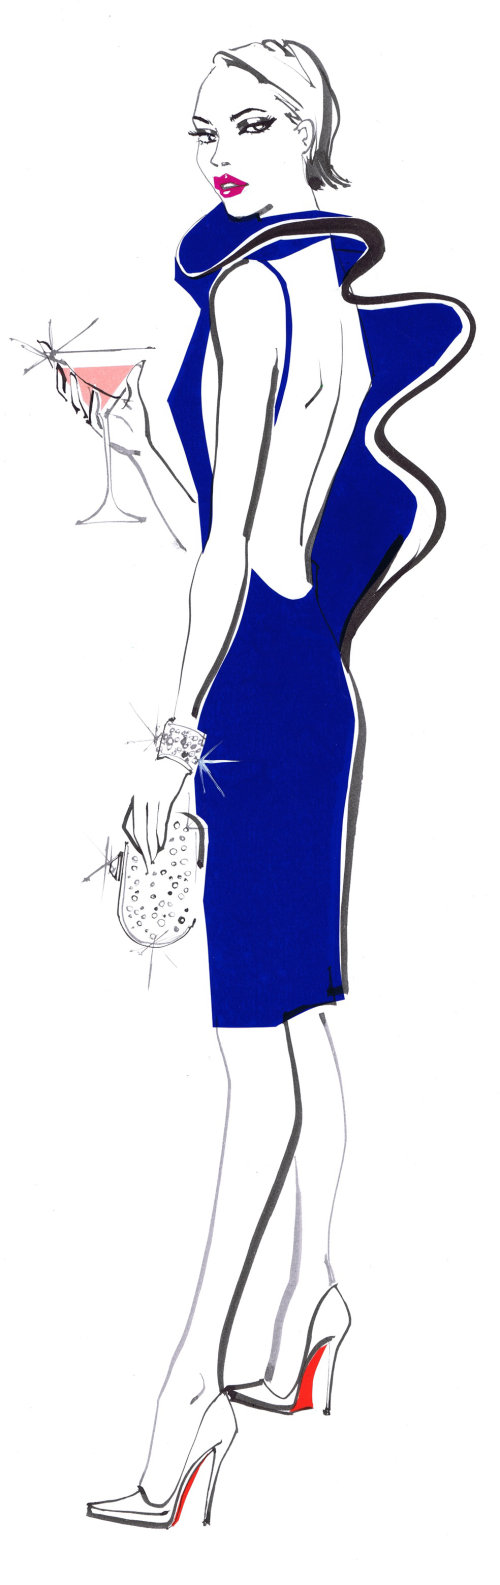 Fashion model Lady holding a glass - An illustration by Jacqueline Bissett